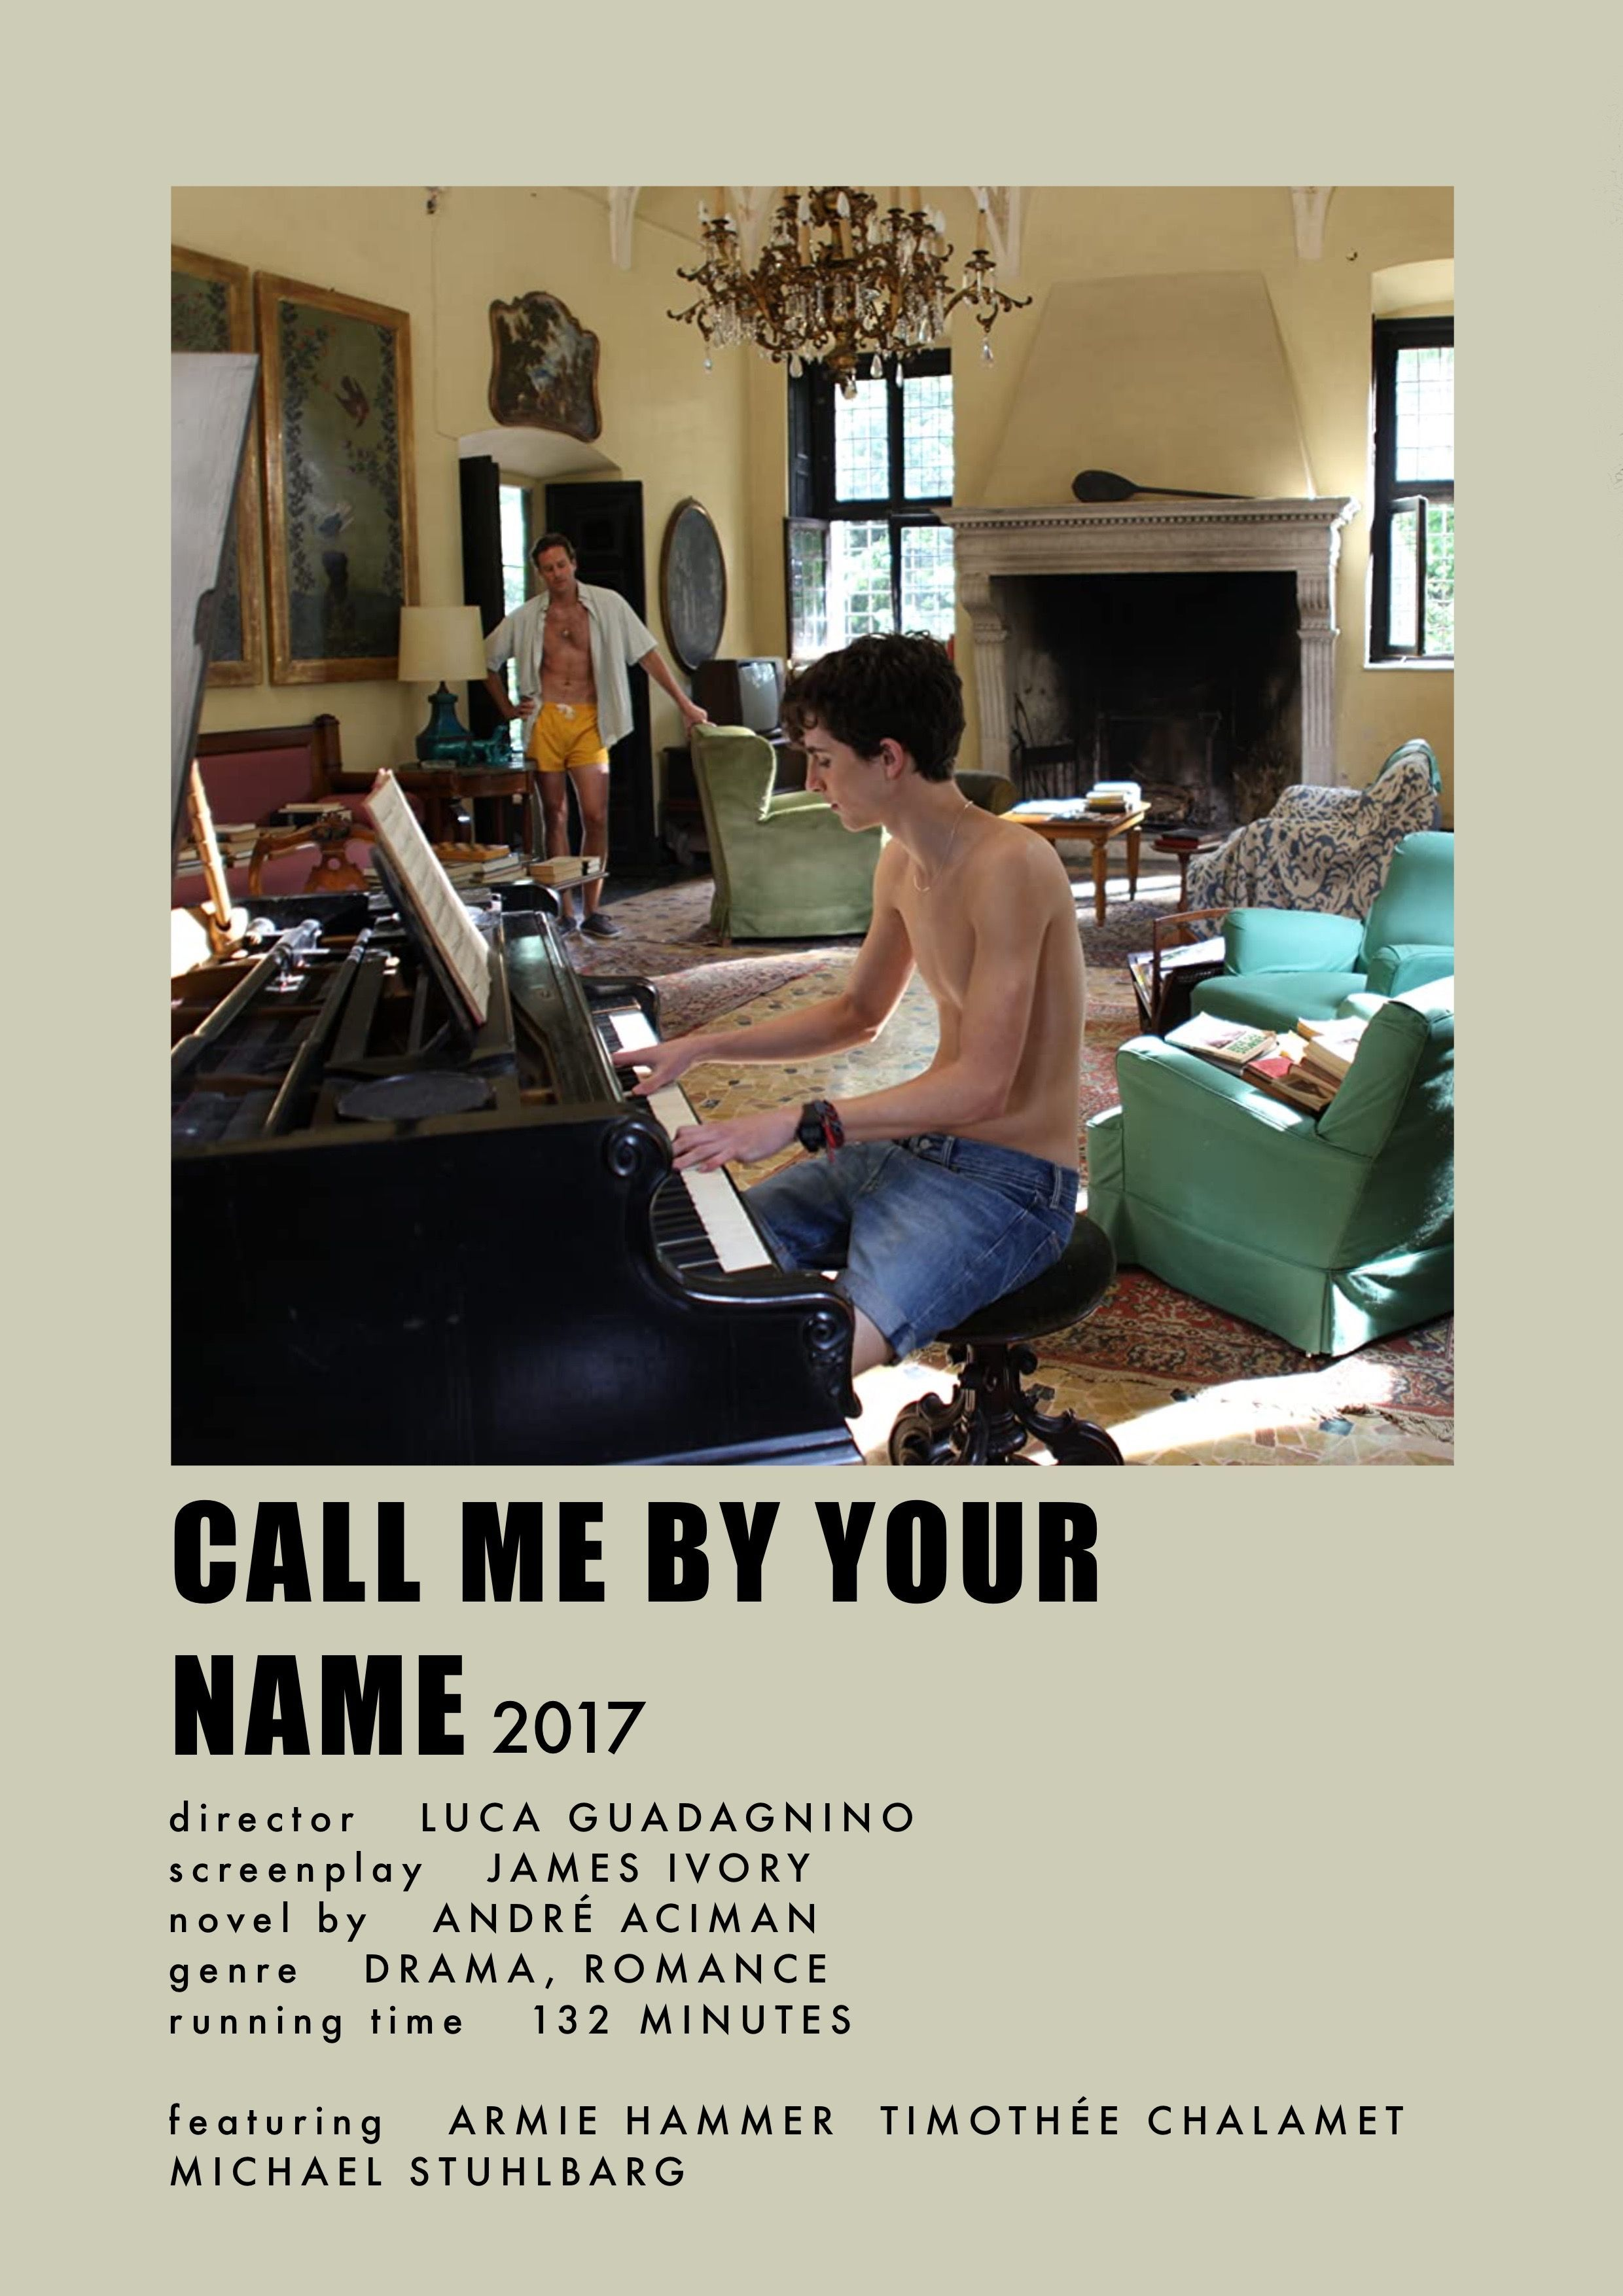 Call Me By Your Name Movie Prints Ver.1 Digital | Etsy